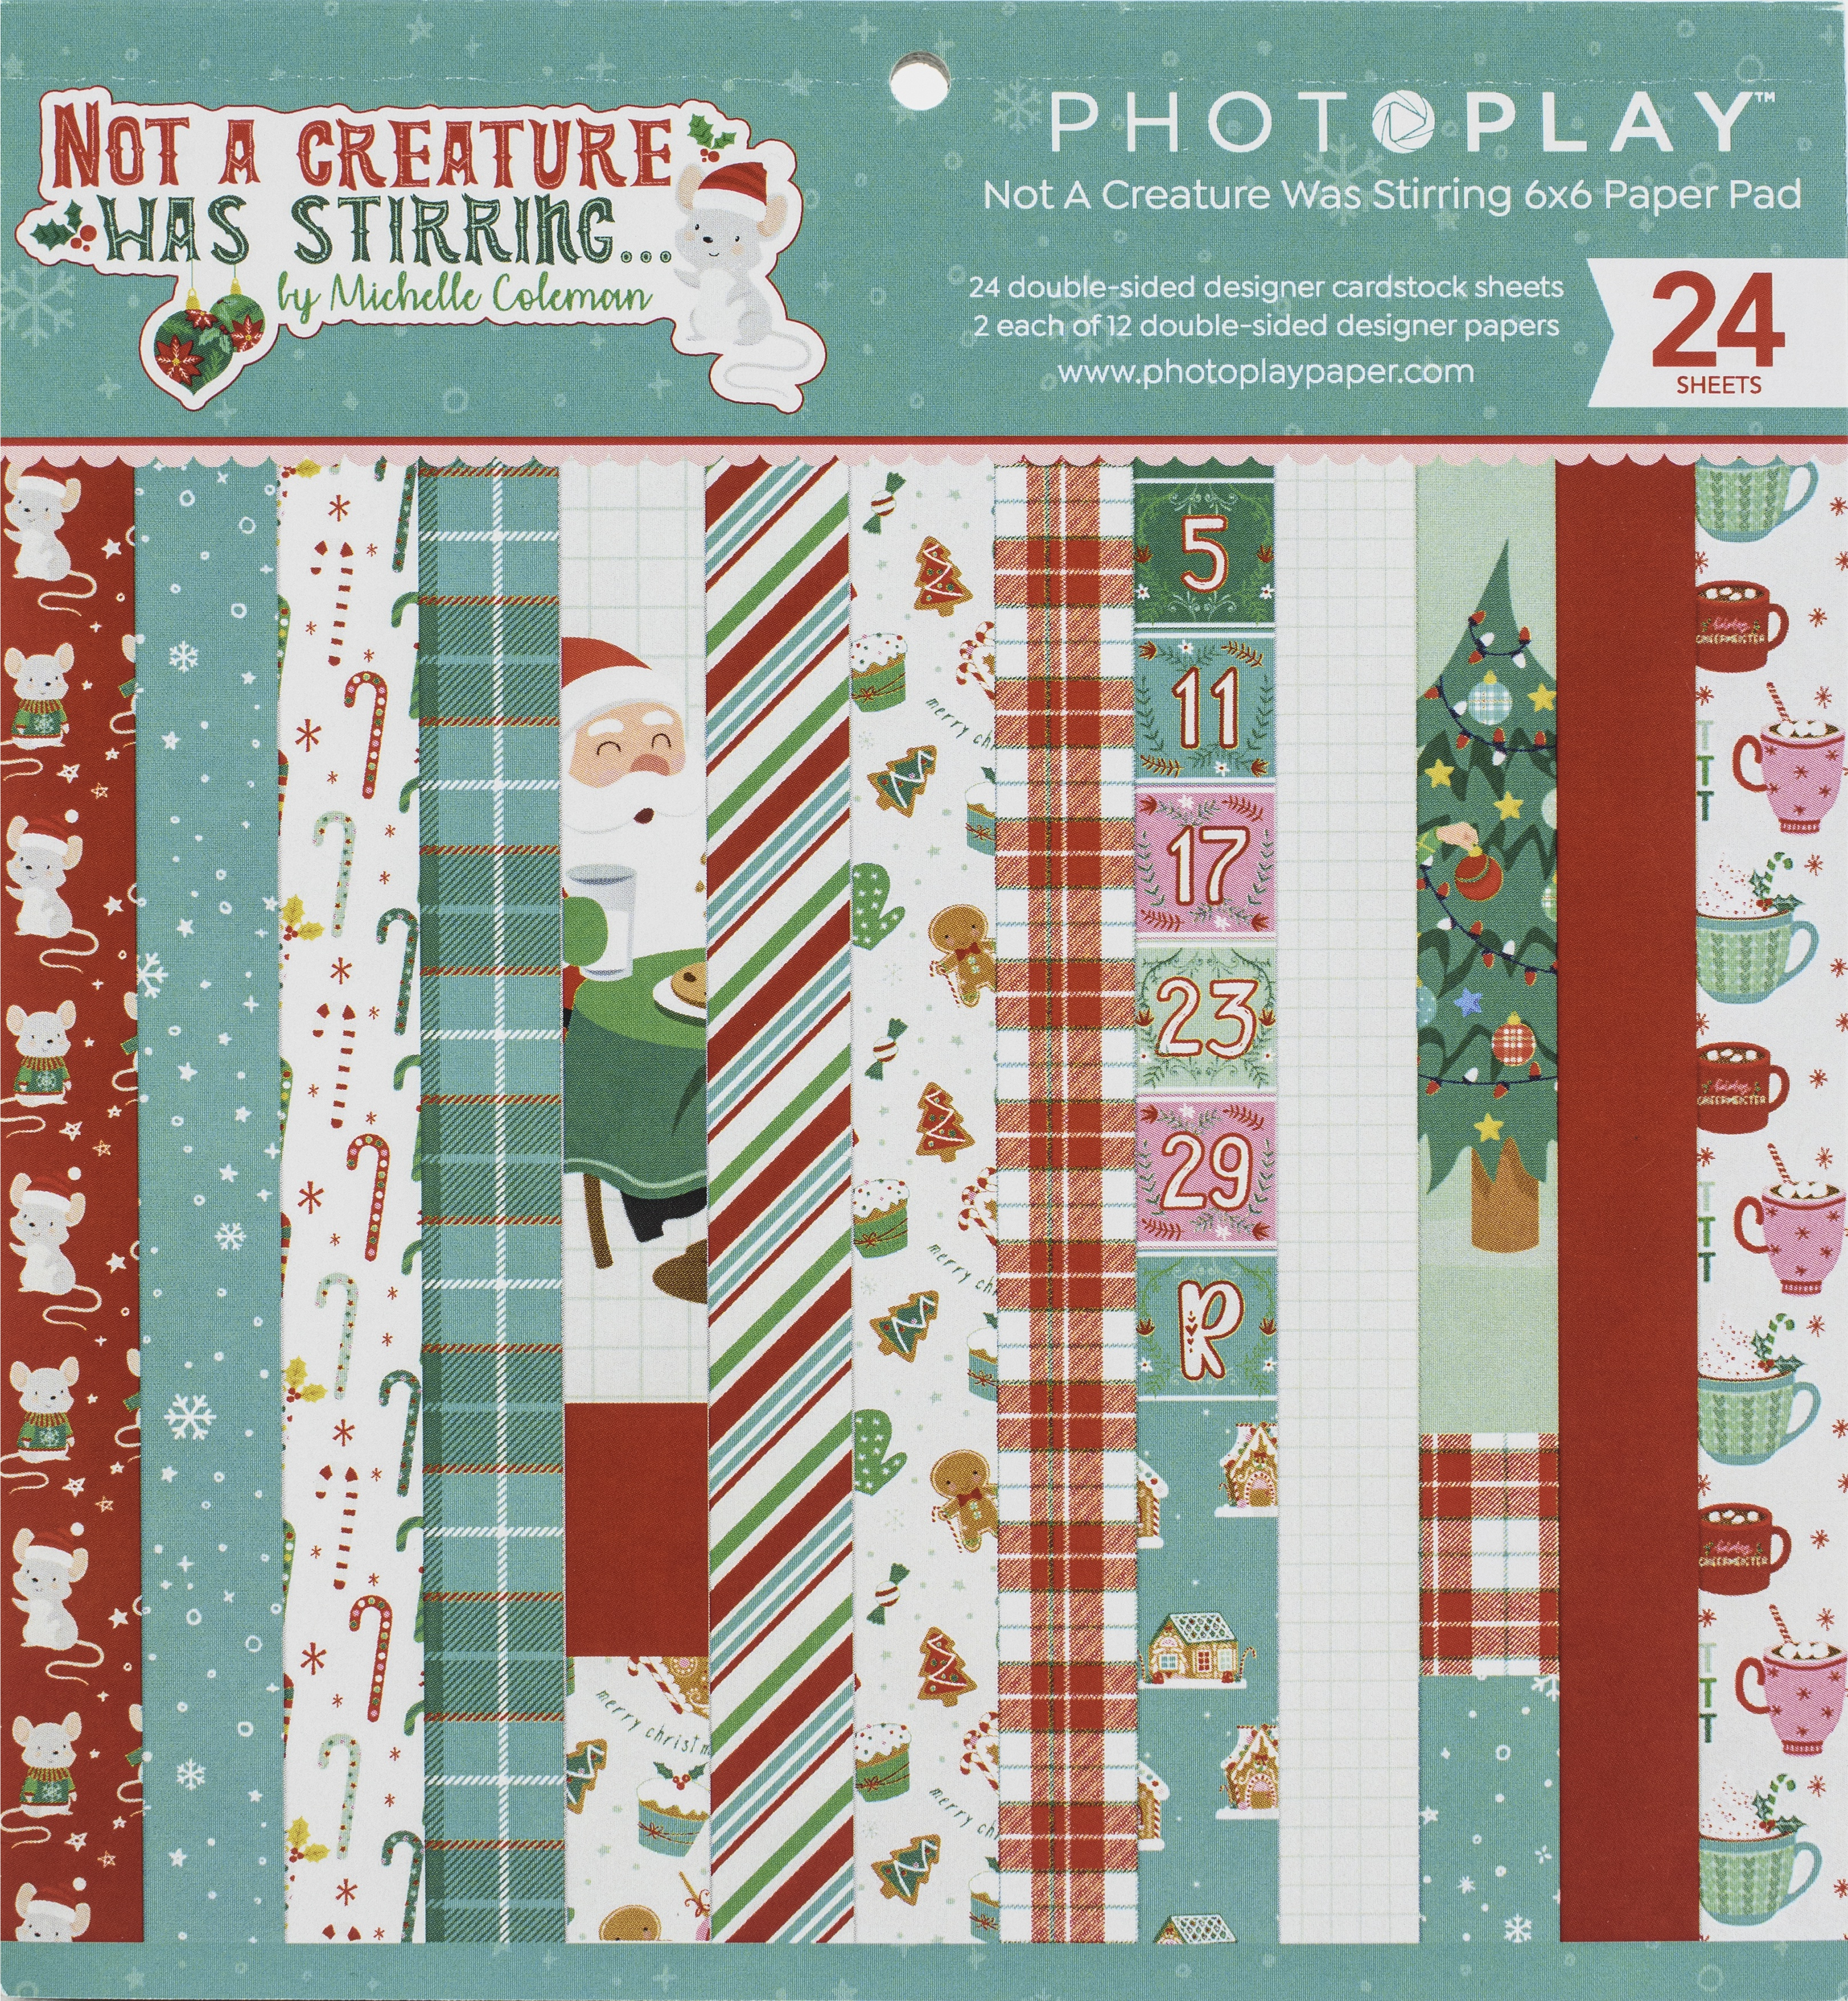 PhotoPlay Not a Creature Was Stirring Paper Pad 6x6